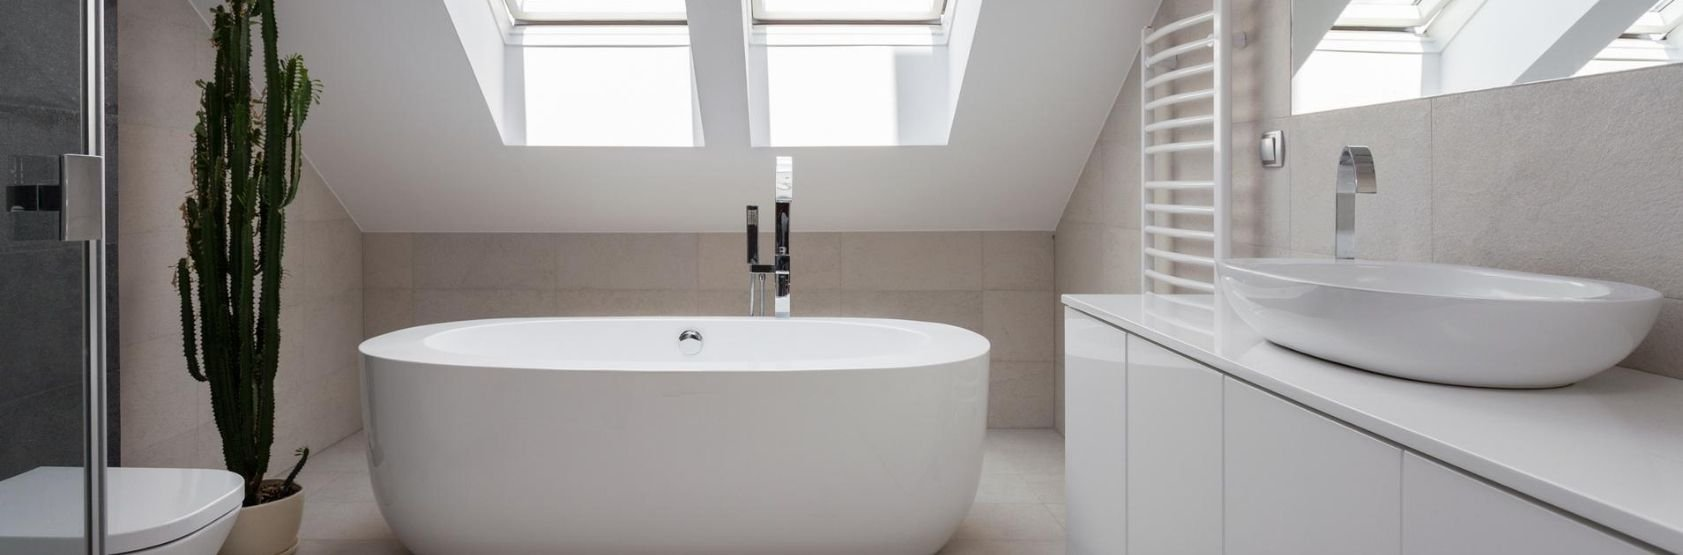 Bathroom-Fitting-Services-Dorset-Hampshire_13